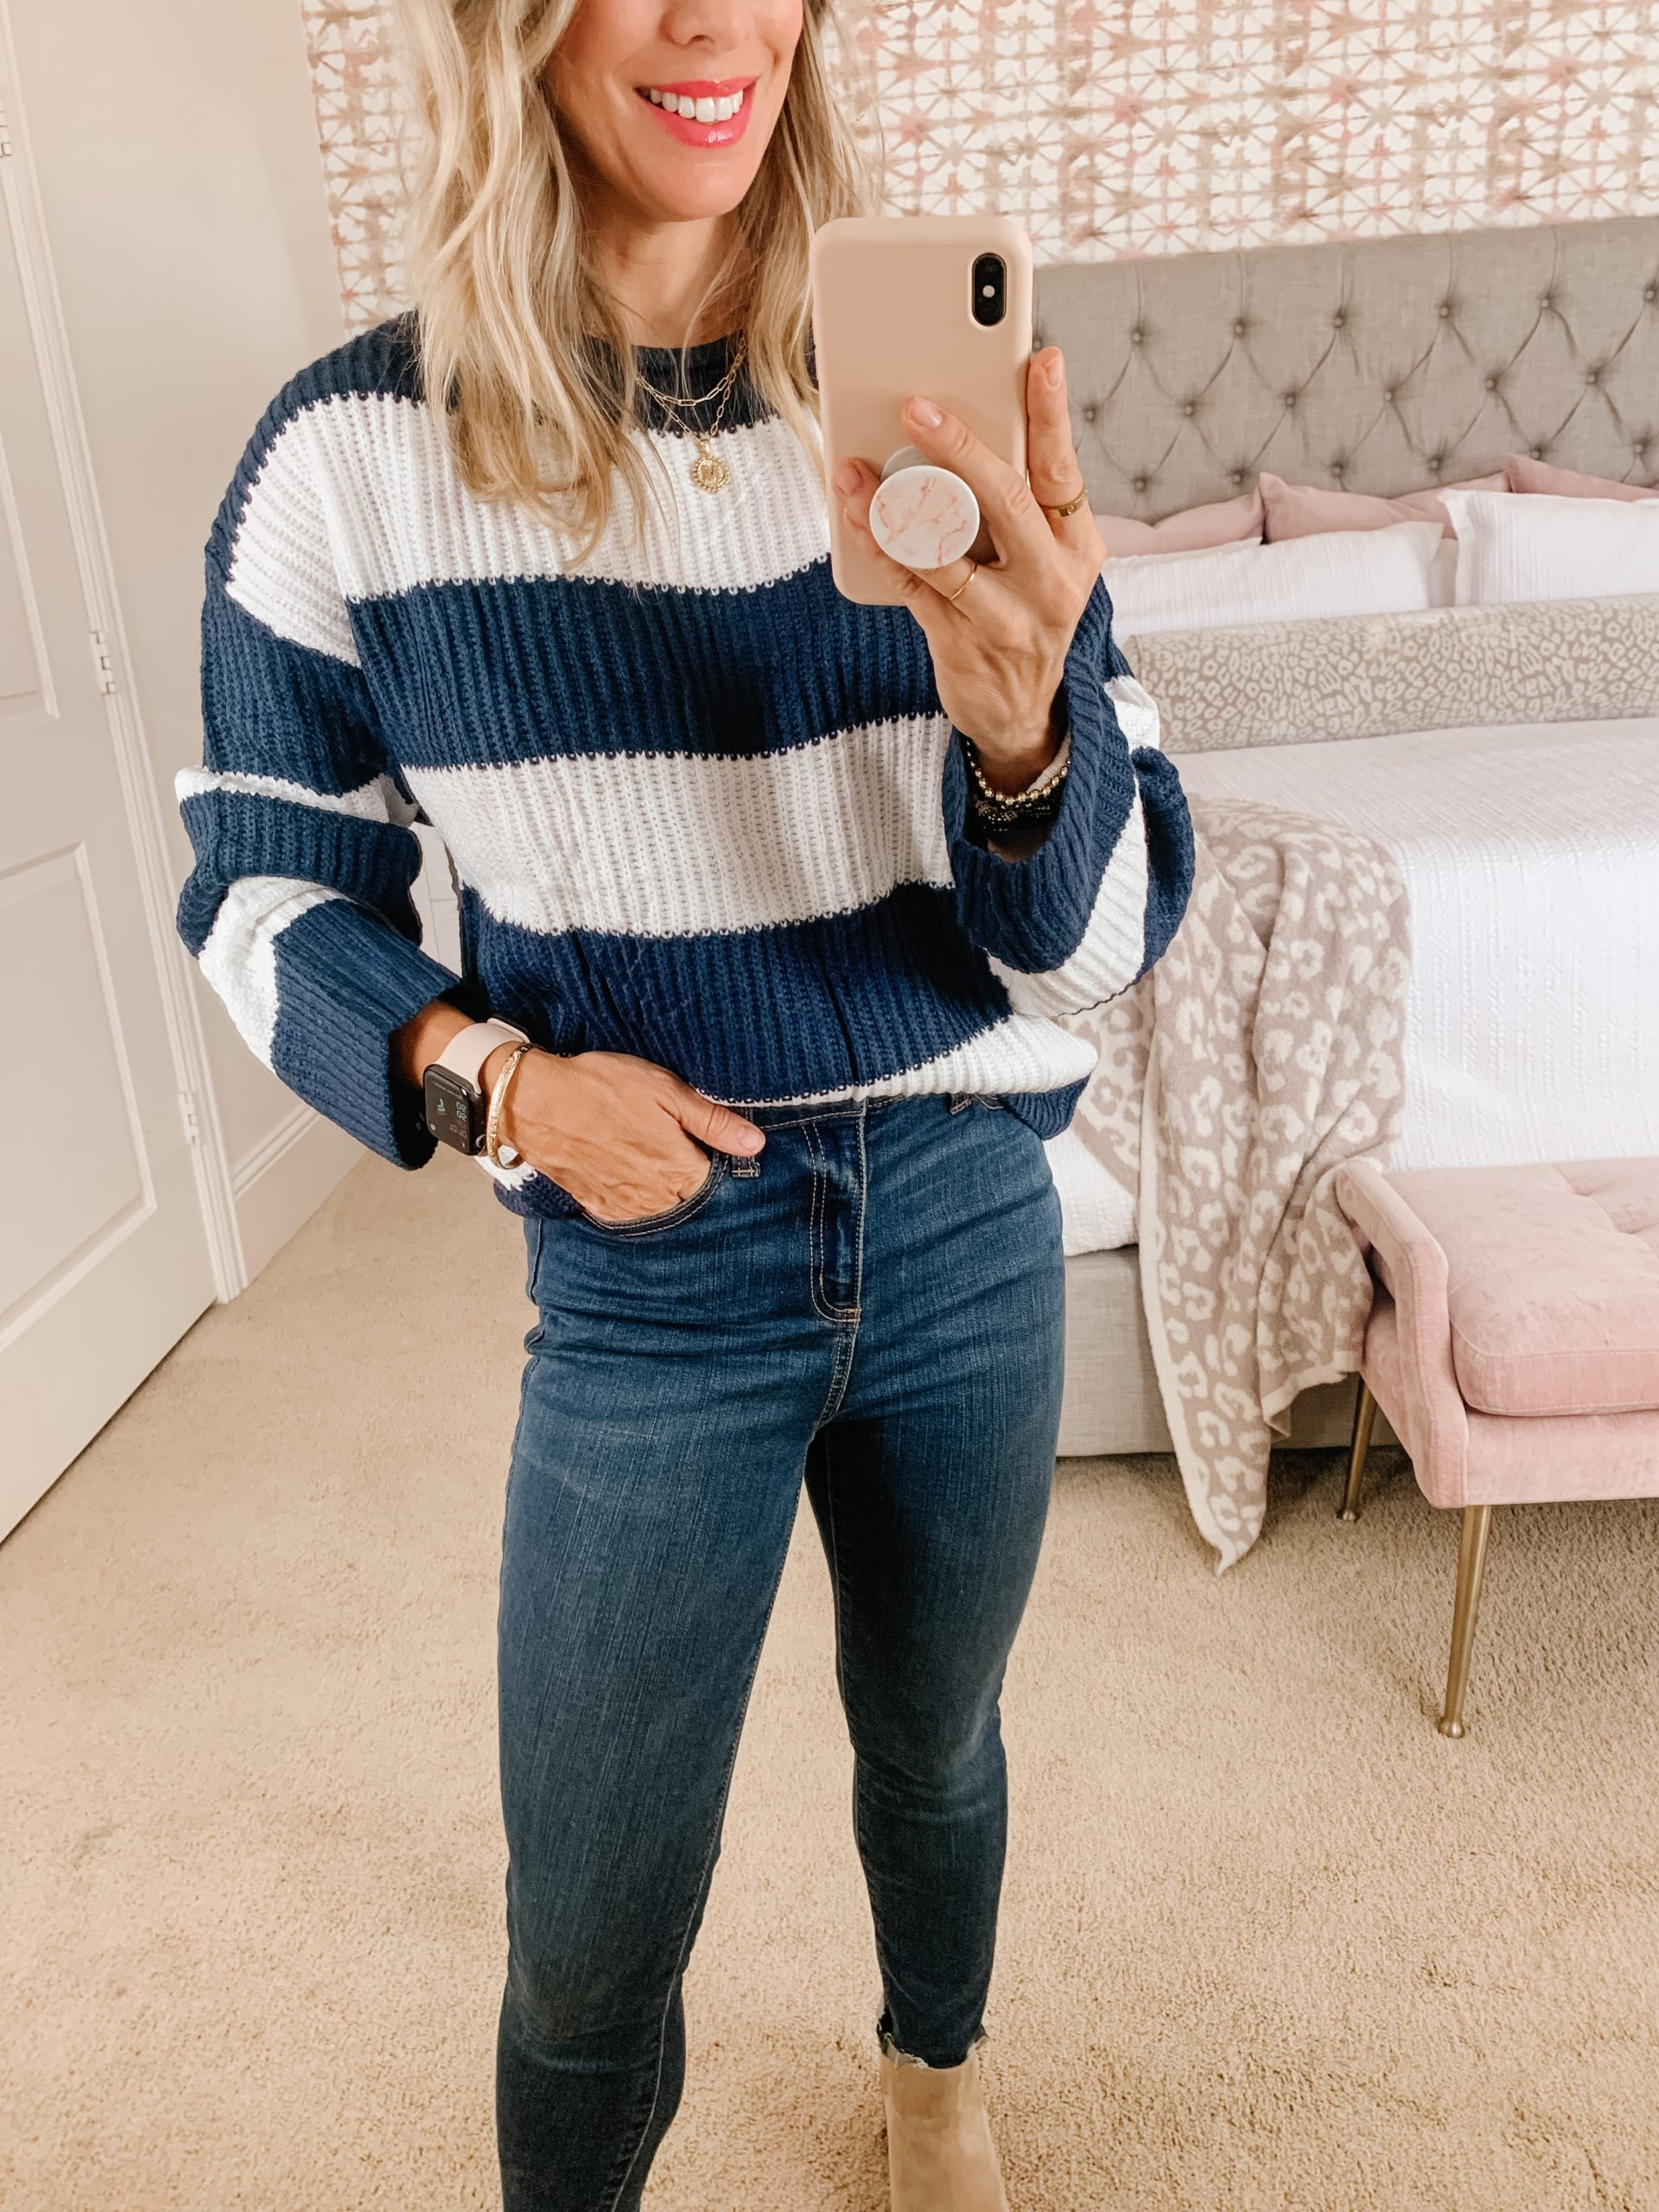 Amazon women's striped sweater and jeans